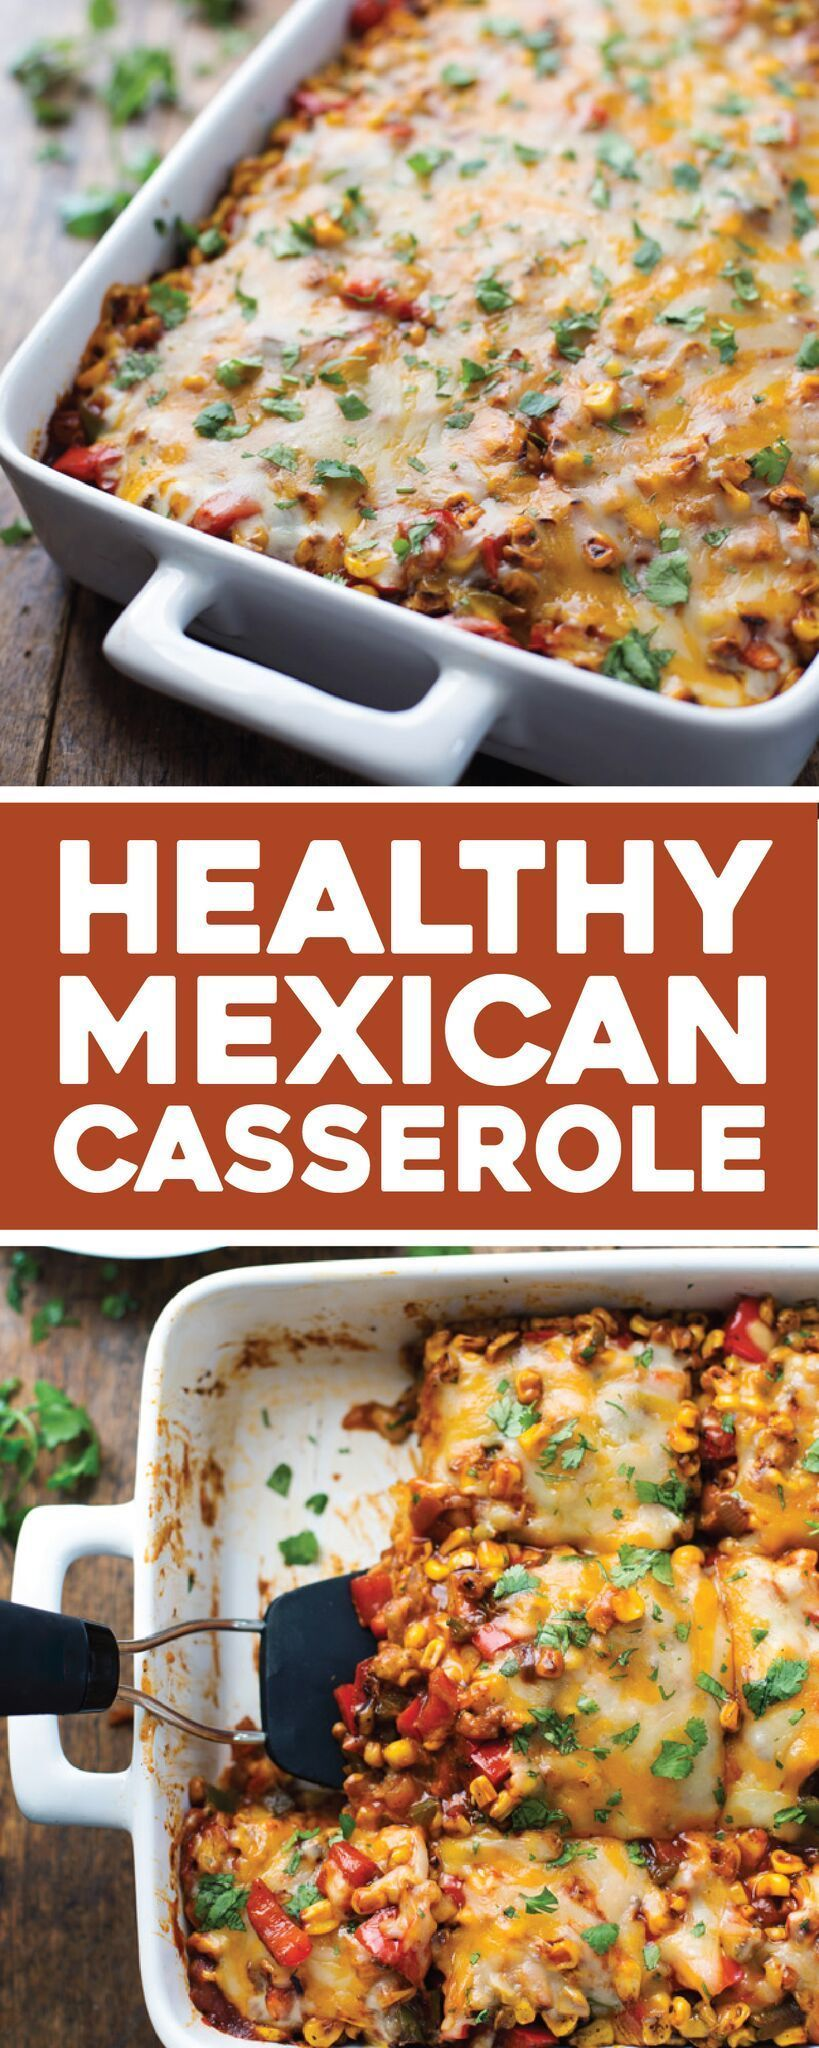 This Healthy Mexican Casserole has roasted corn, roasted bell peppers, cheese, enchilada sauce, and corn tortillas. Perfect leftovers for lunches! |